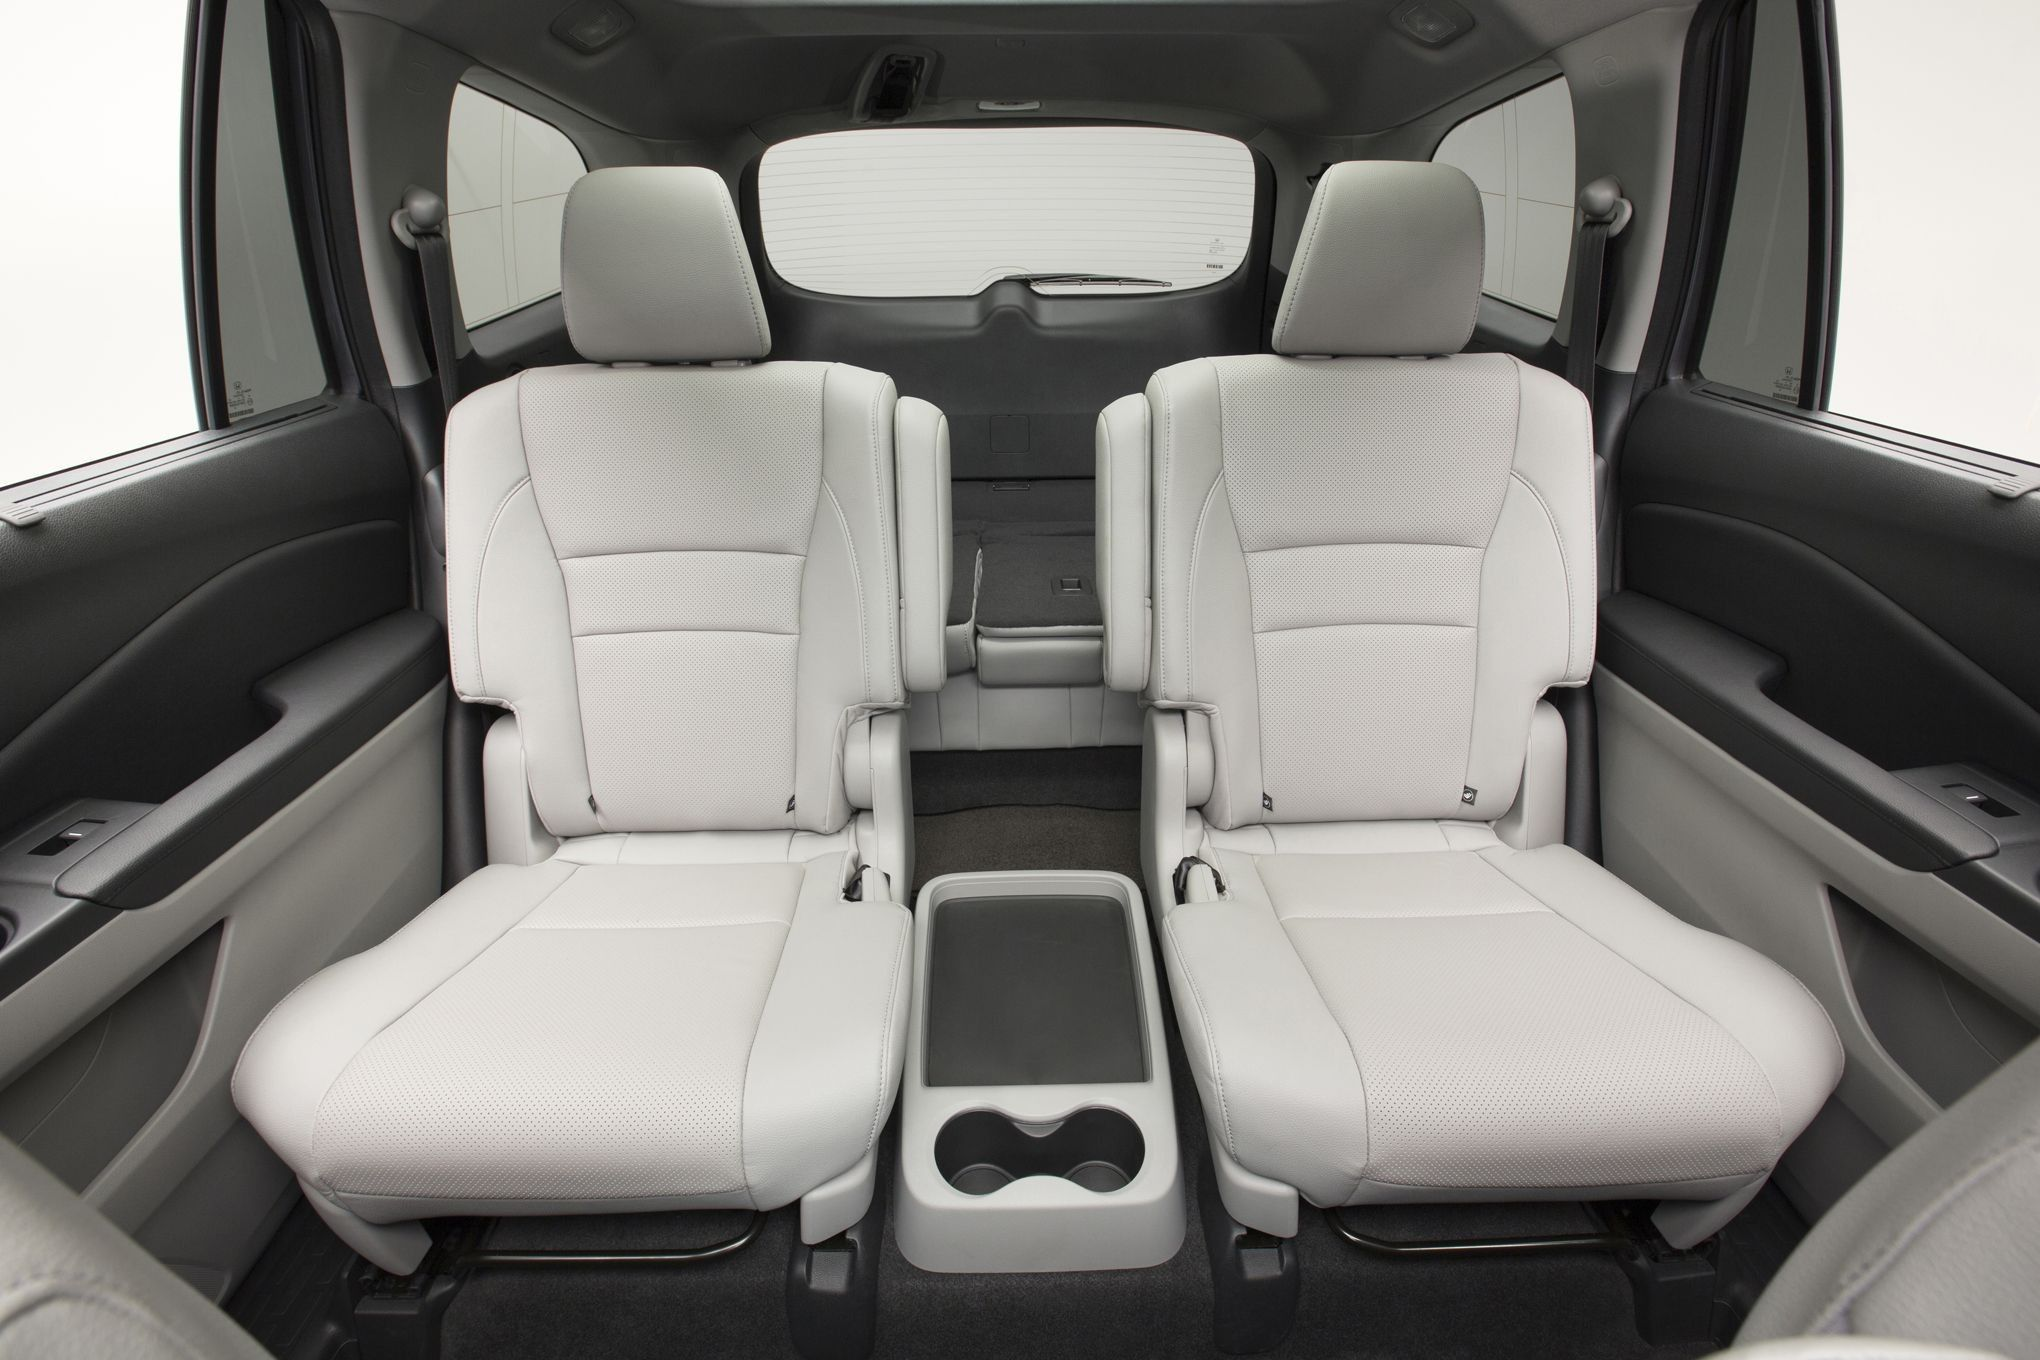 Best Of Honda Pilot With Captains Chairs Honda Pilot Elite